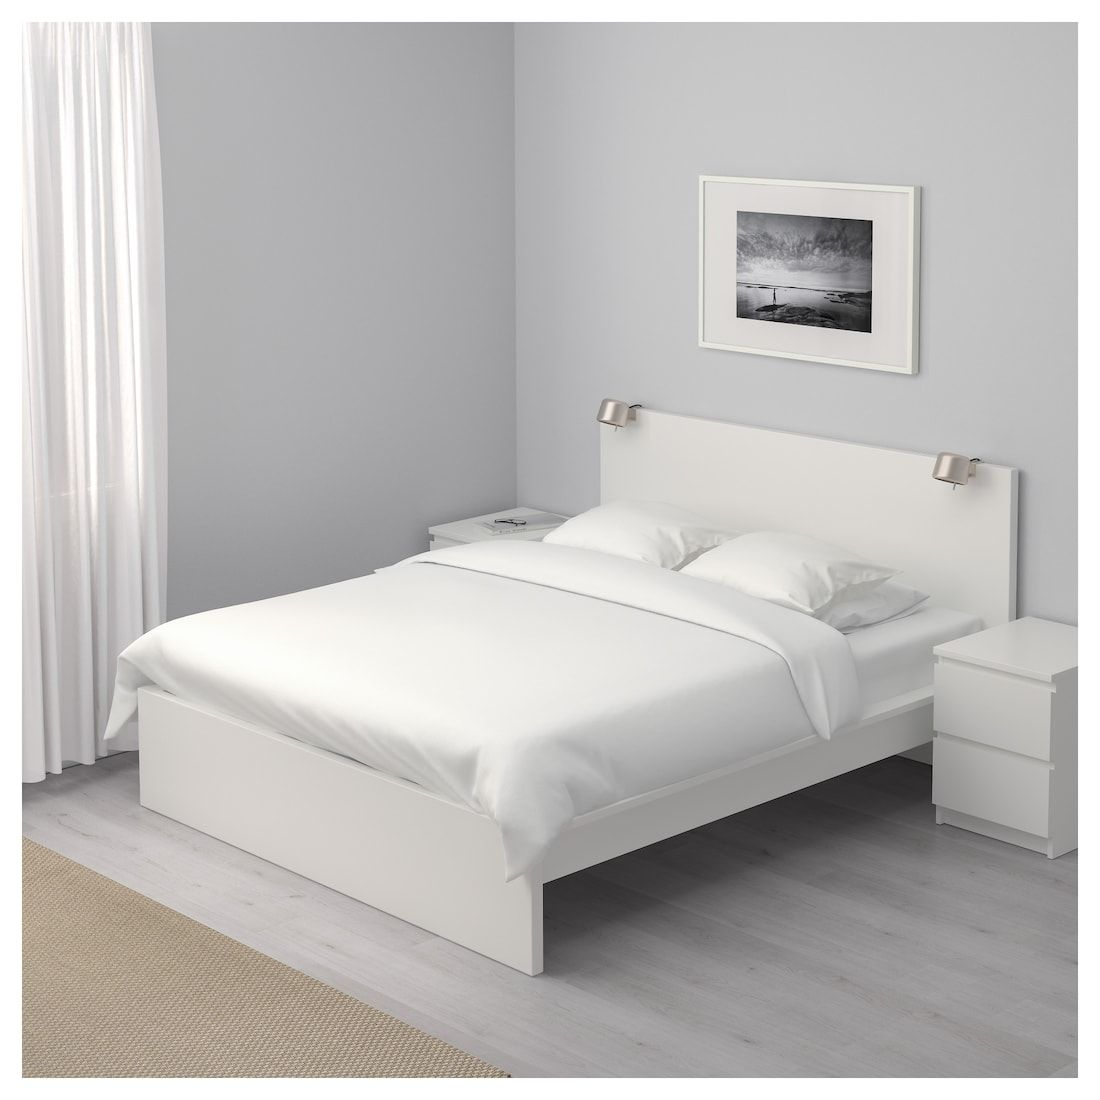 Malm Bed Frame High White Luroy Queen Ikea Malm Bed Frame Ikea Bed Frames White Bed Frame